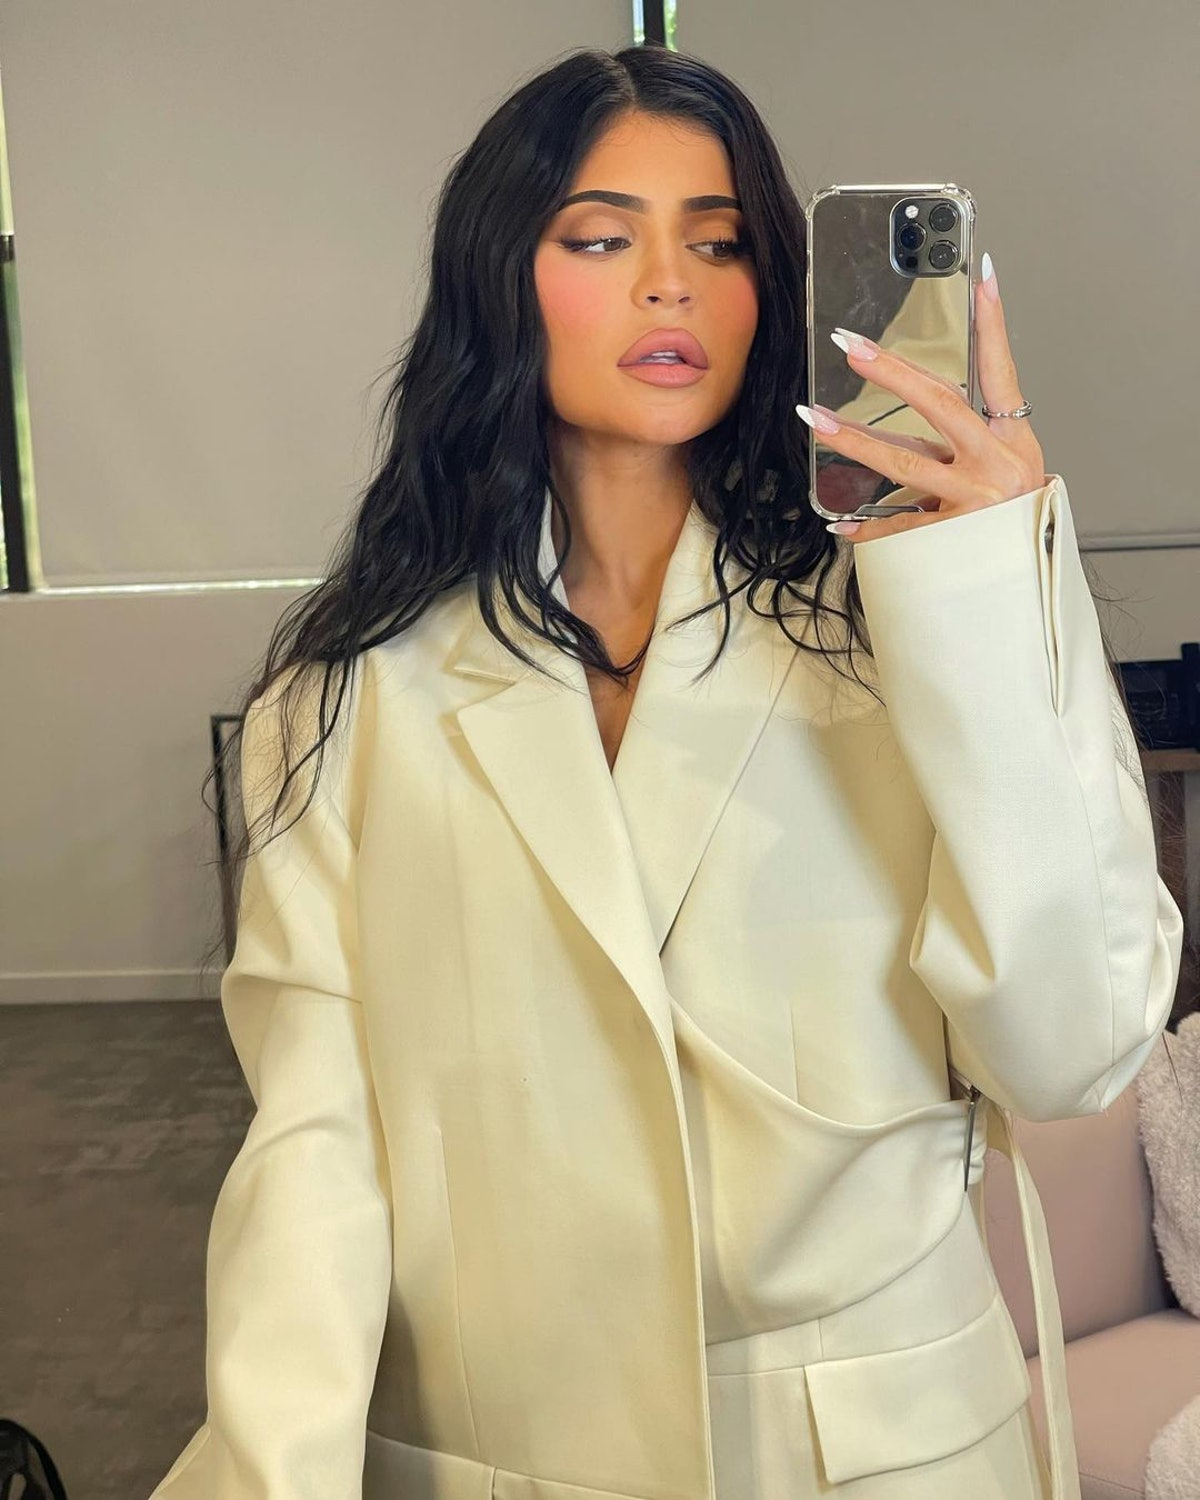 Kylie Jenner poses in a mirror selfie wearing a white blazer.